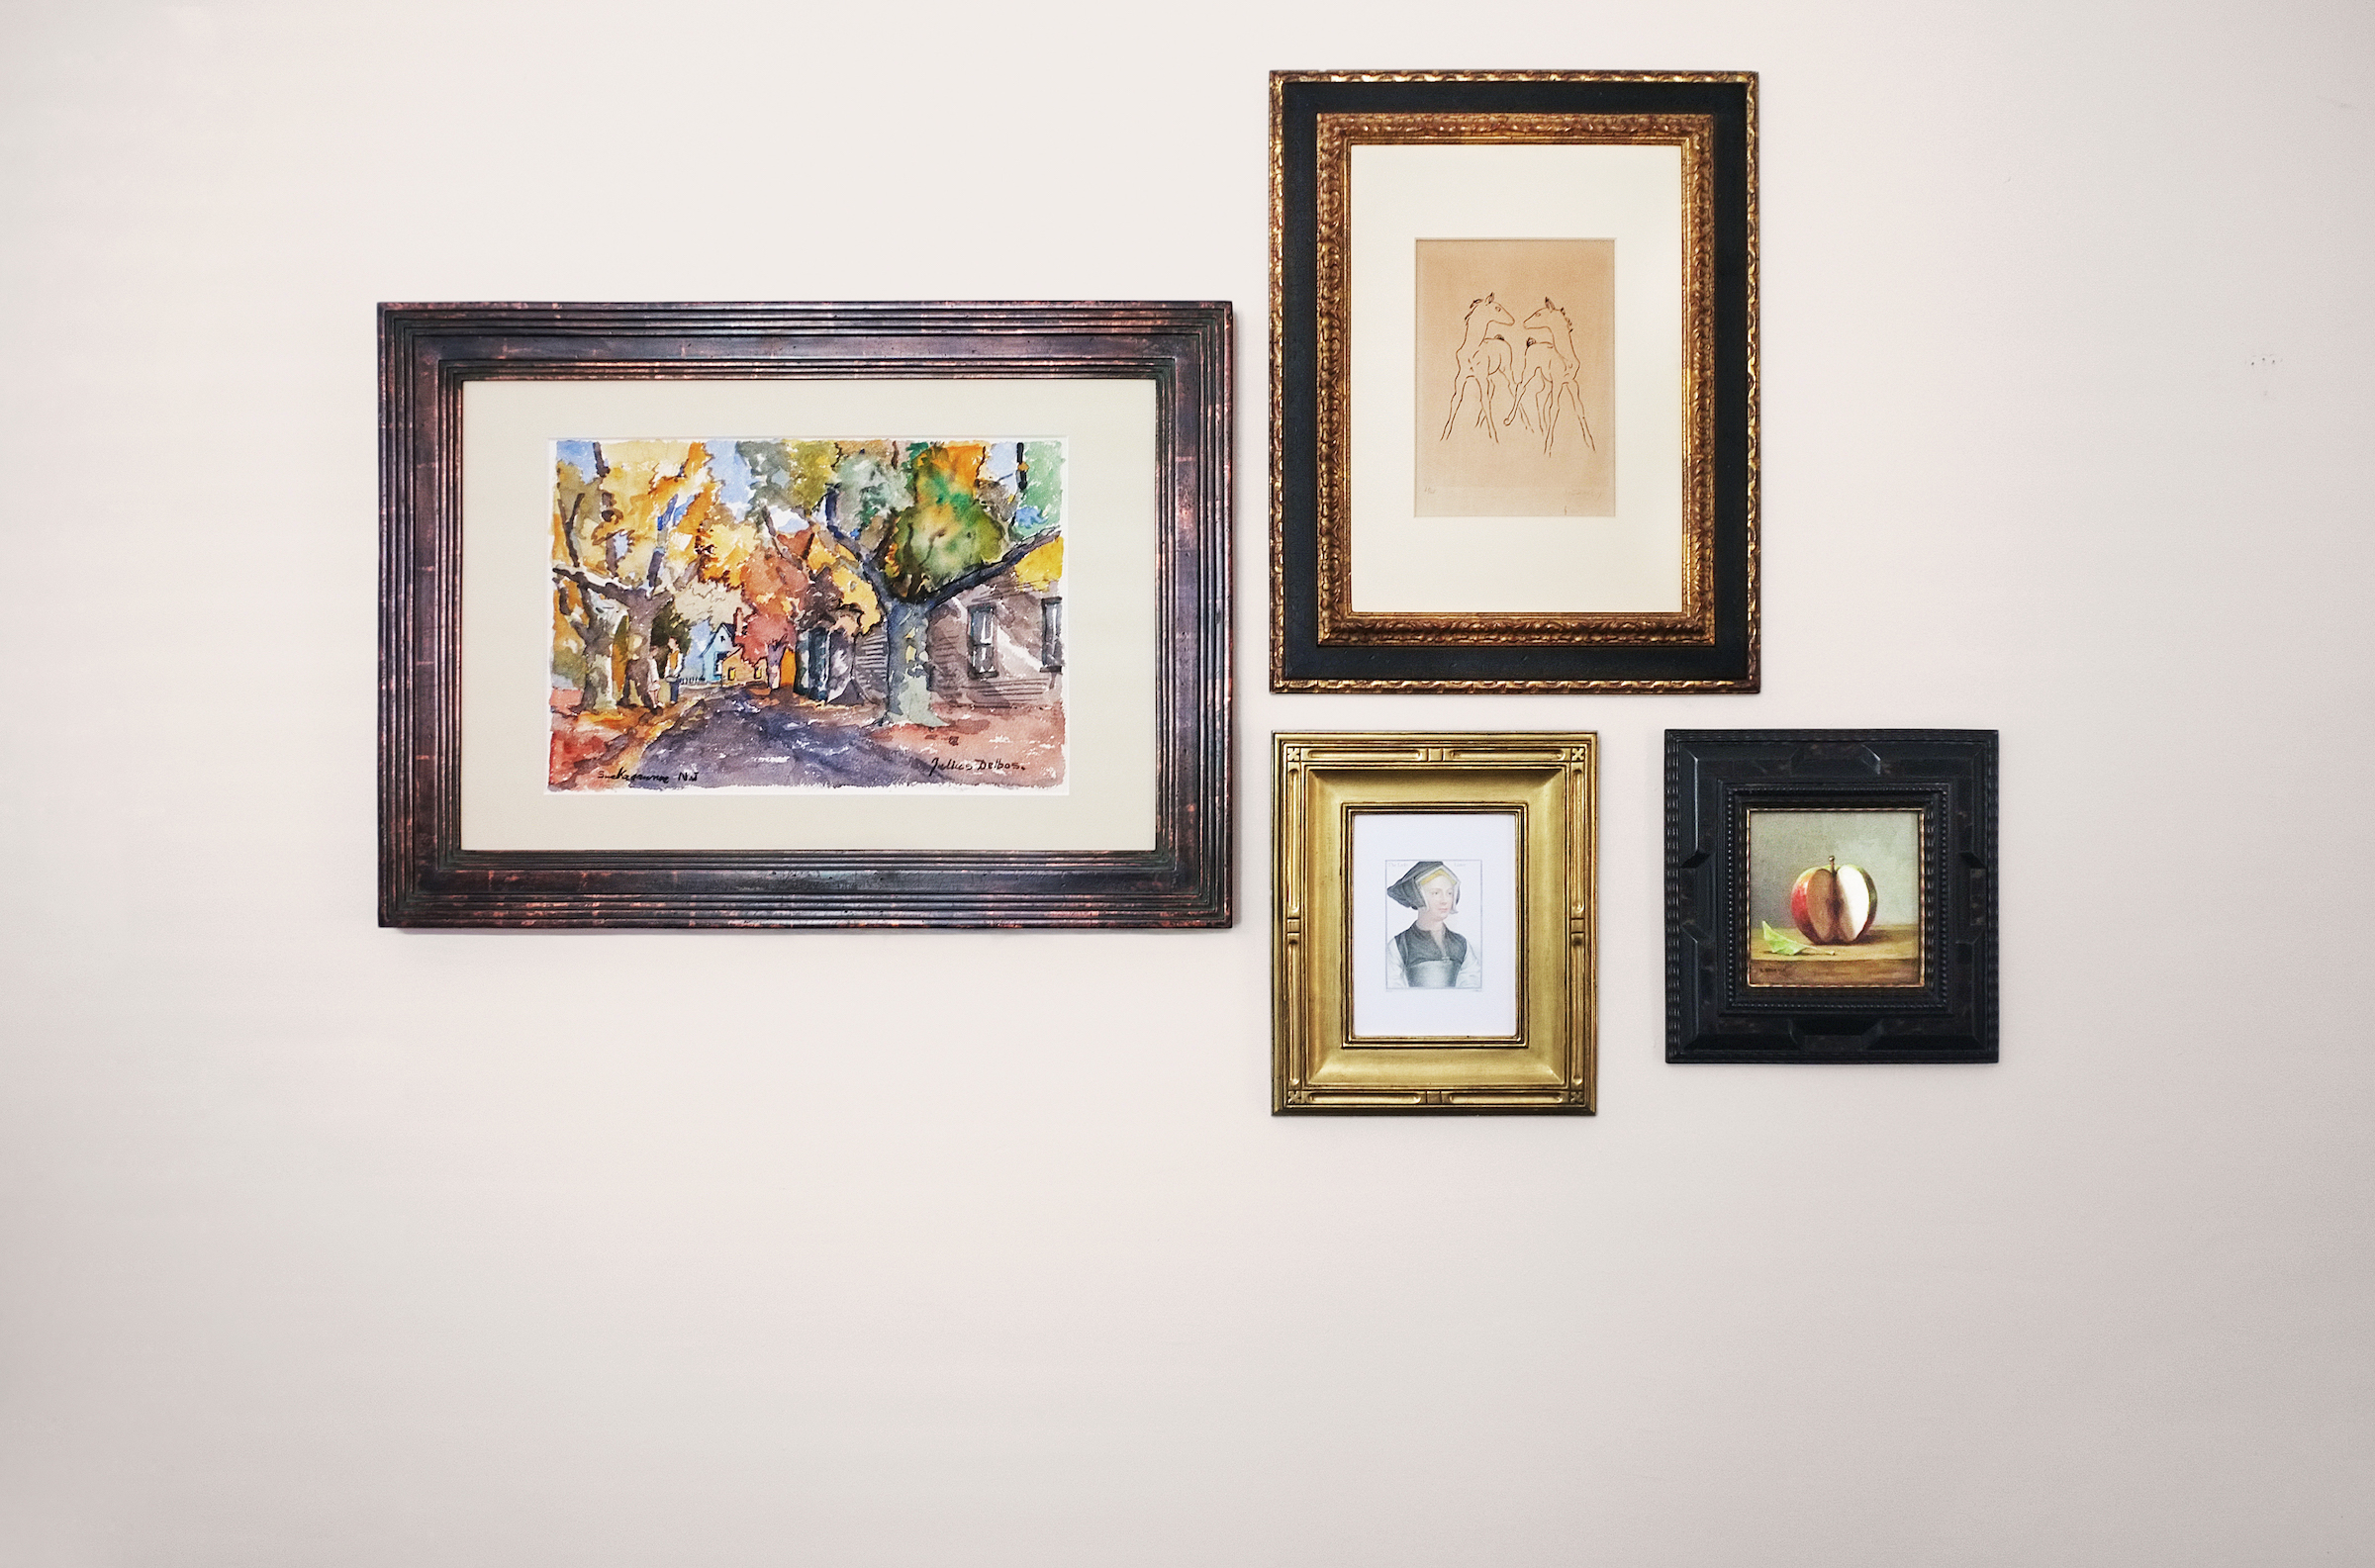 Four mounted picture frames with prints